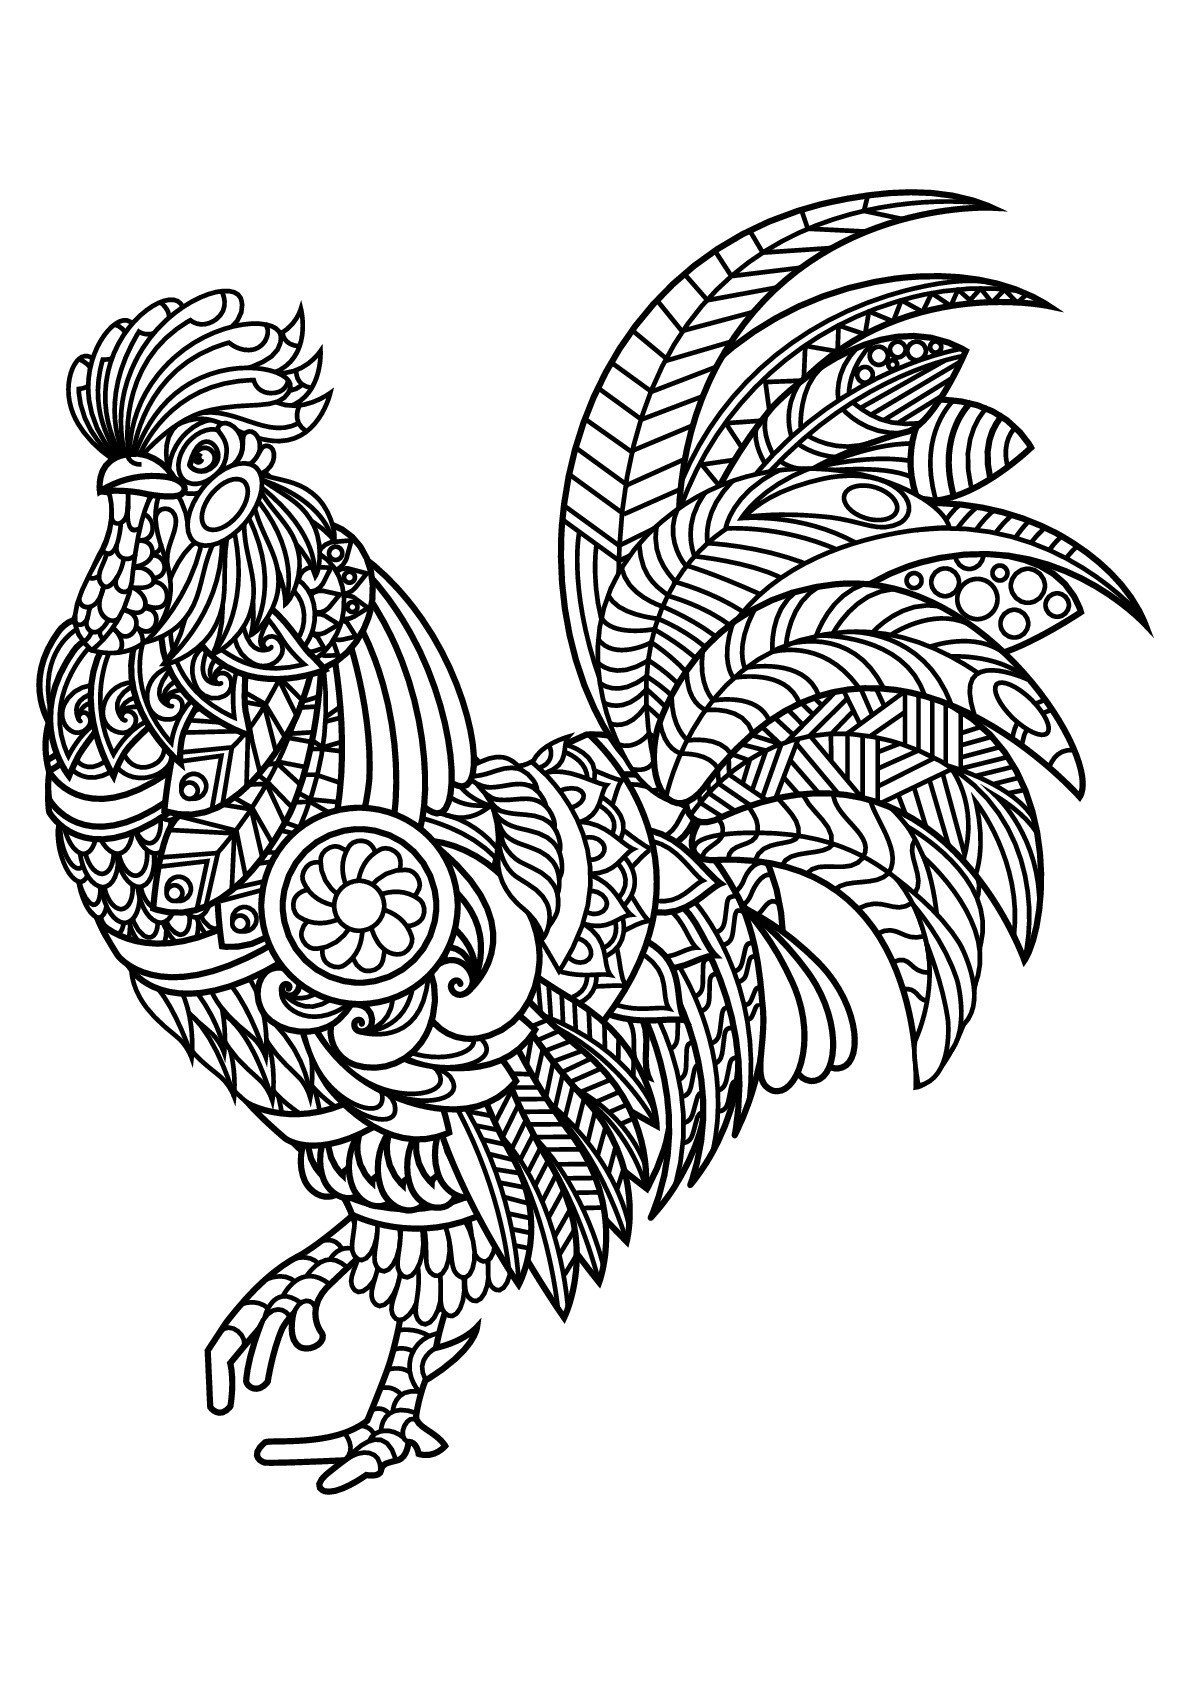 coloring pages for kids birds birds for kids birds kids coloring pages birds for kids pages coloring